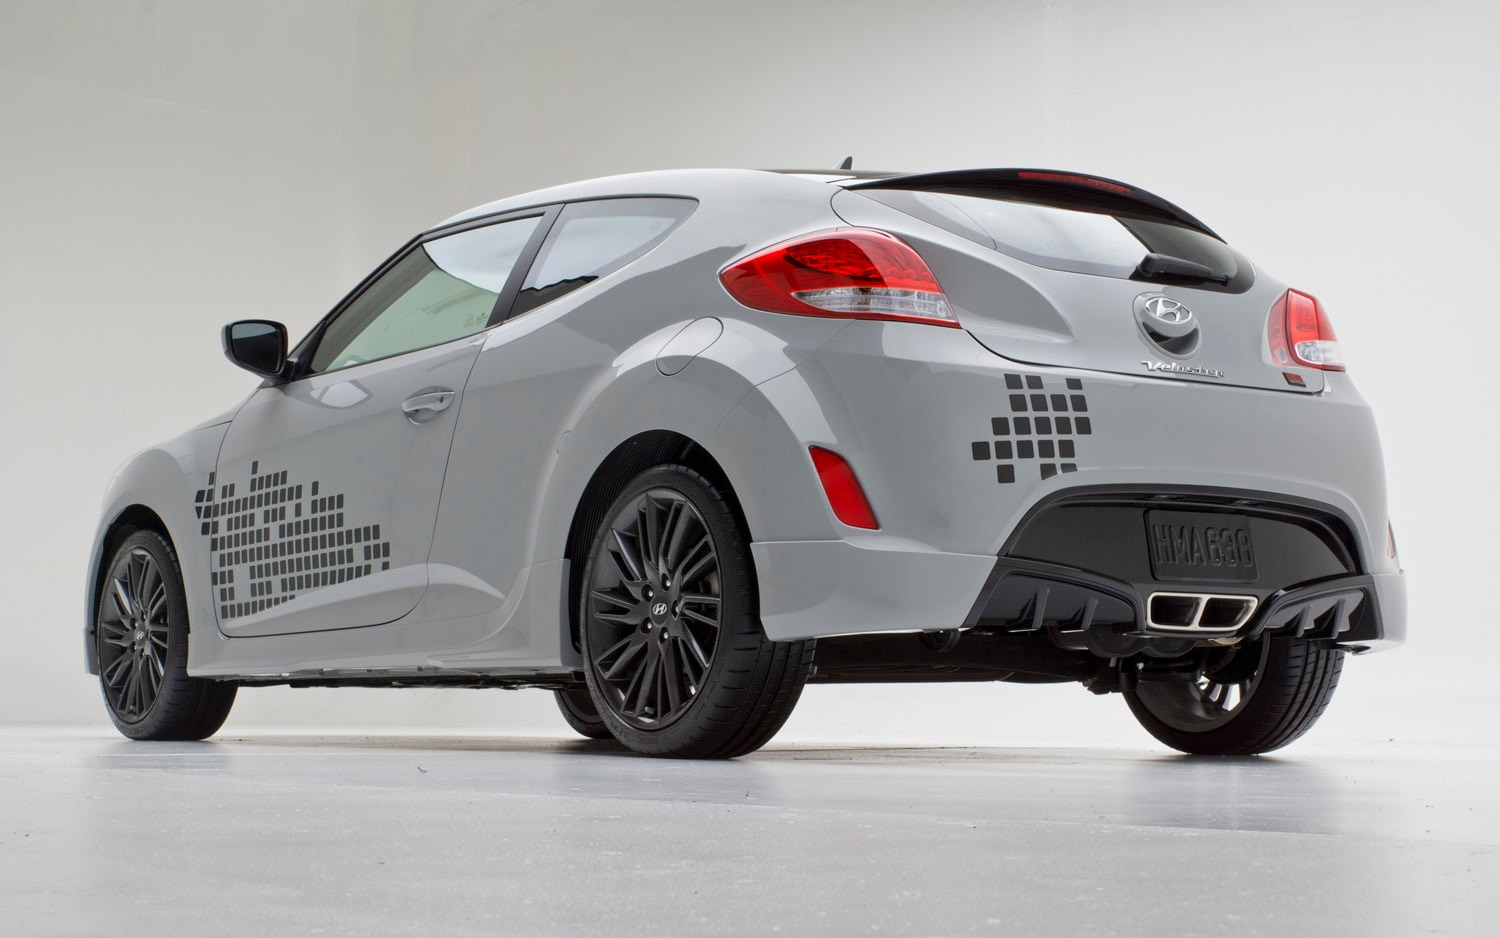 hyundai elevates show car to production status with 2013 veloster re mix edition. Black Bedroom Furniture Sets. Home Design Ideas